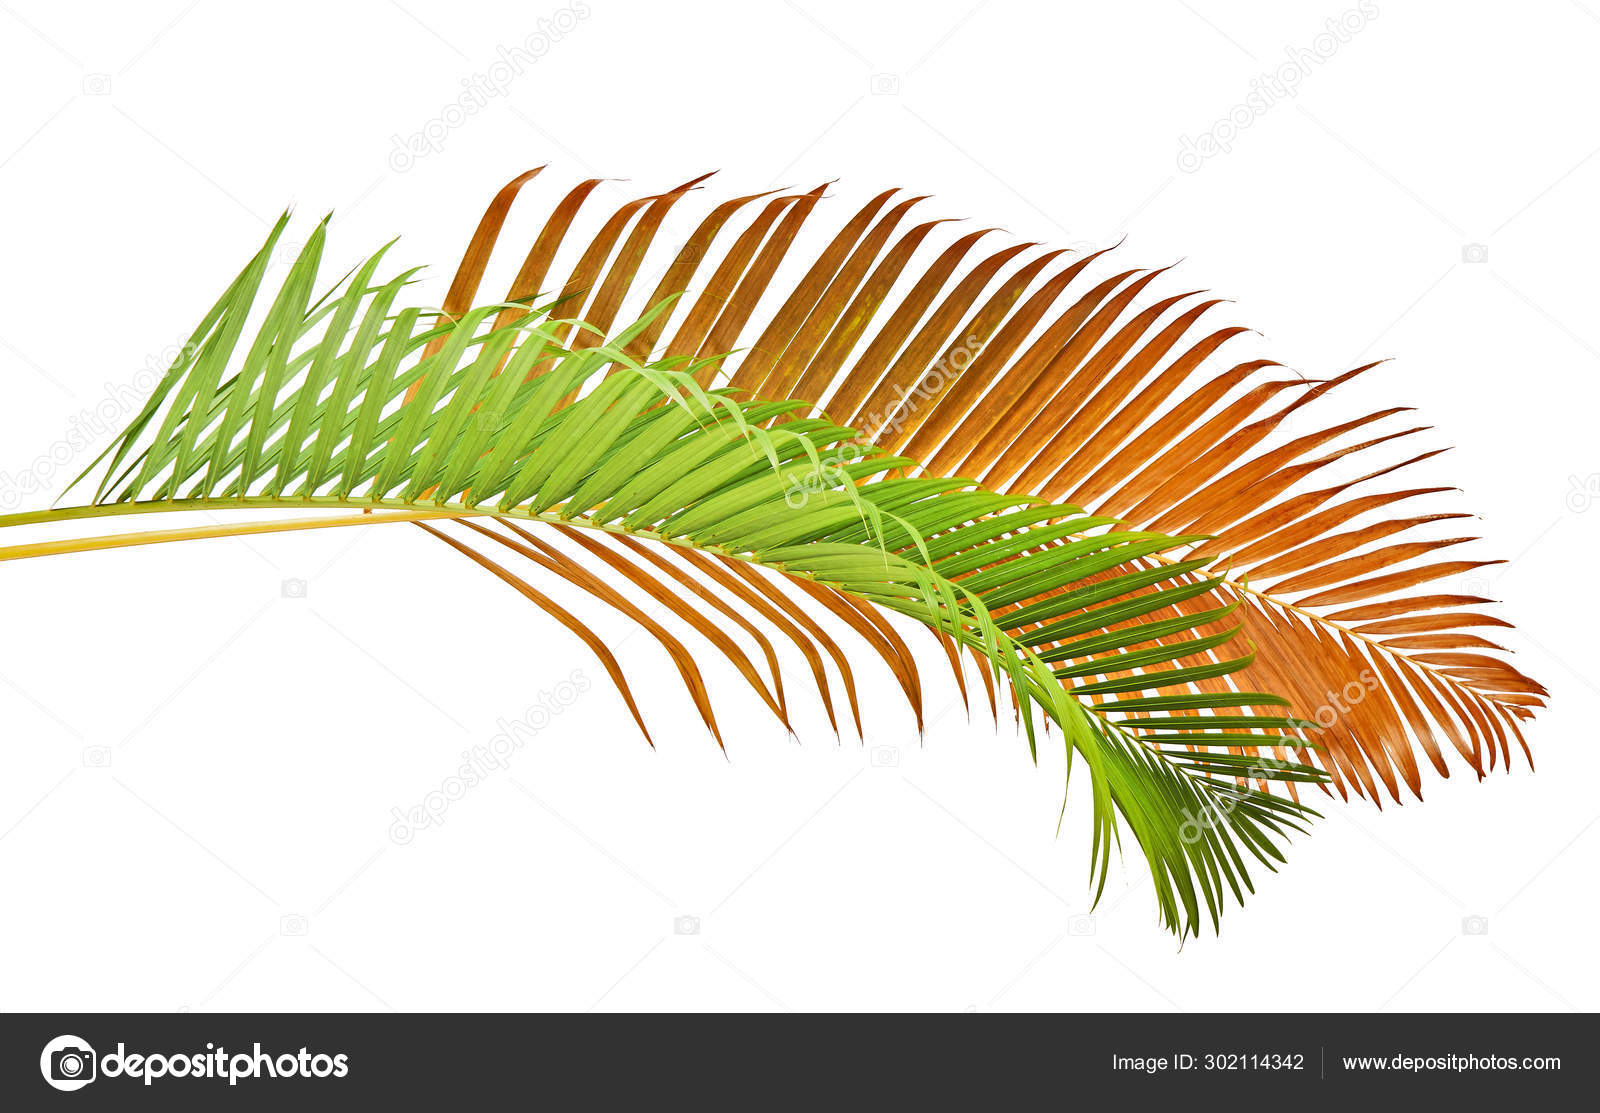 Yellow Palm Leaves Dypsis Lutescens Golden Cane Palm Areca Palm Stock Photo Image By Dewins 302114342